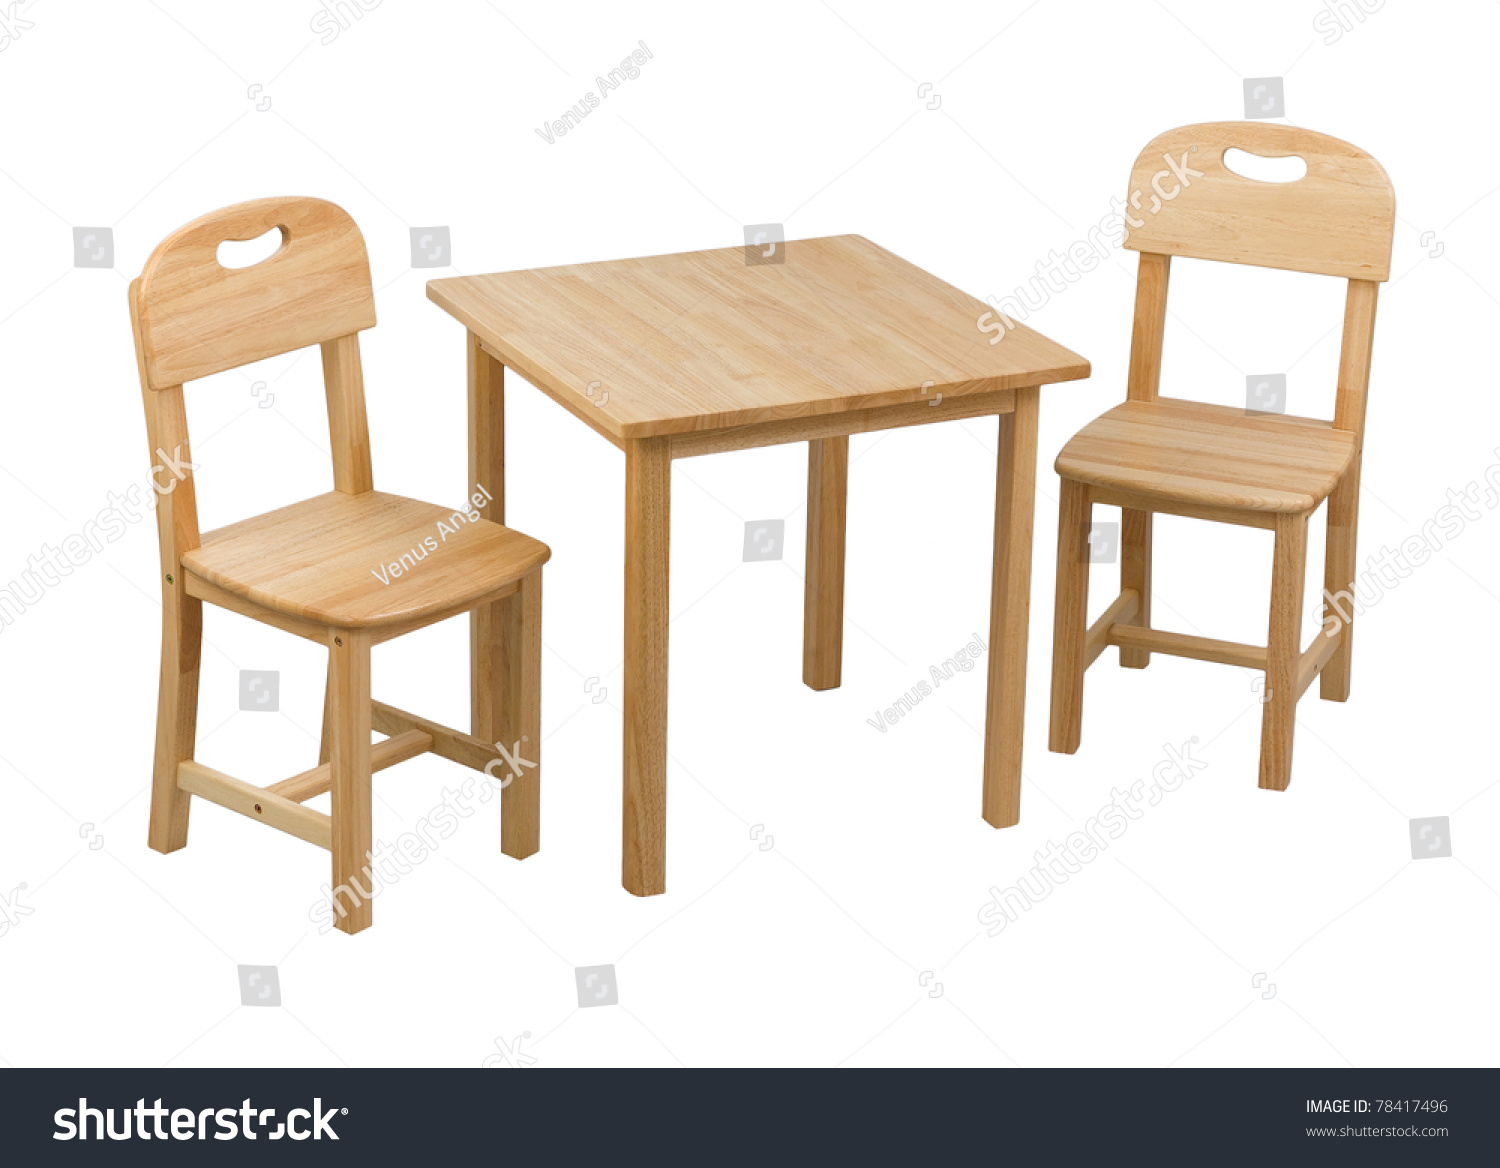 small toddler chair ikea cotton covers a wooden chairs and desk for kids stock photo